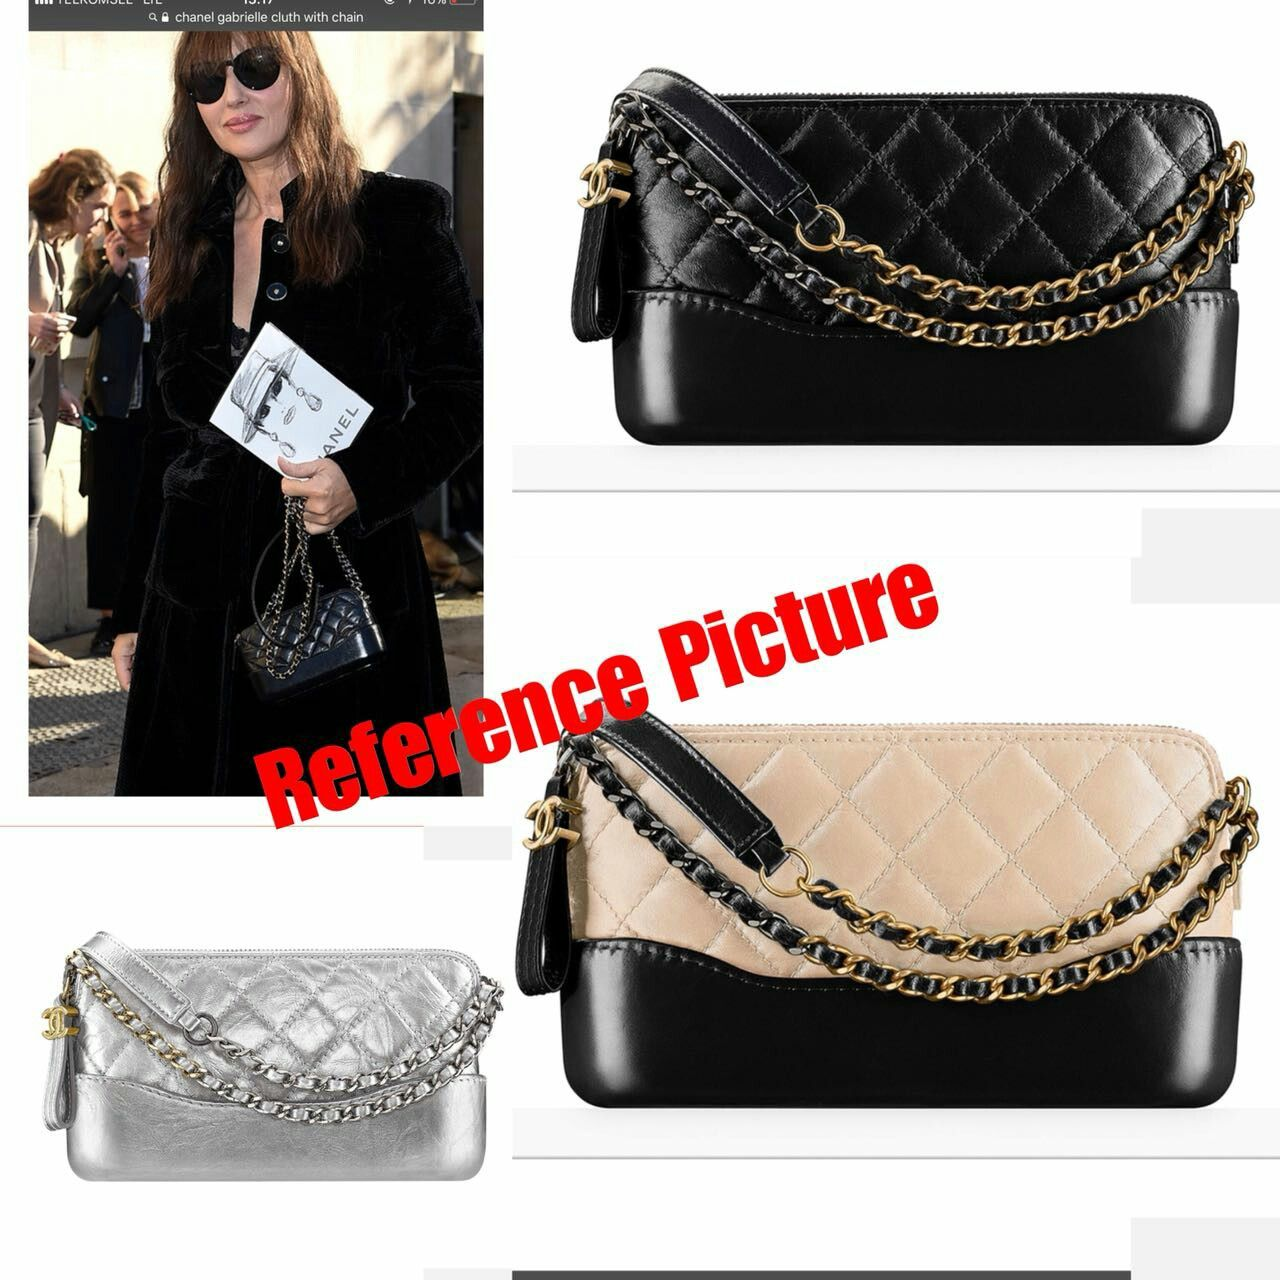 15e7555c756f72 Chanel Gabrielle Cluth with Chain 1163 semipremium Sz: 24x10x15 Bahan kulit  4 colour : Black